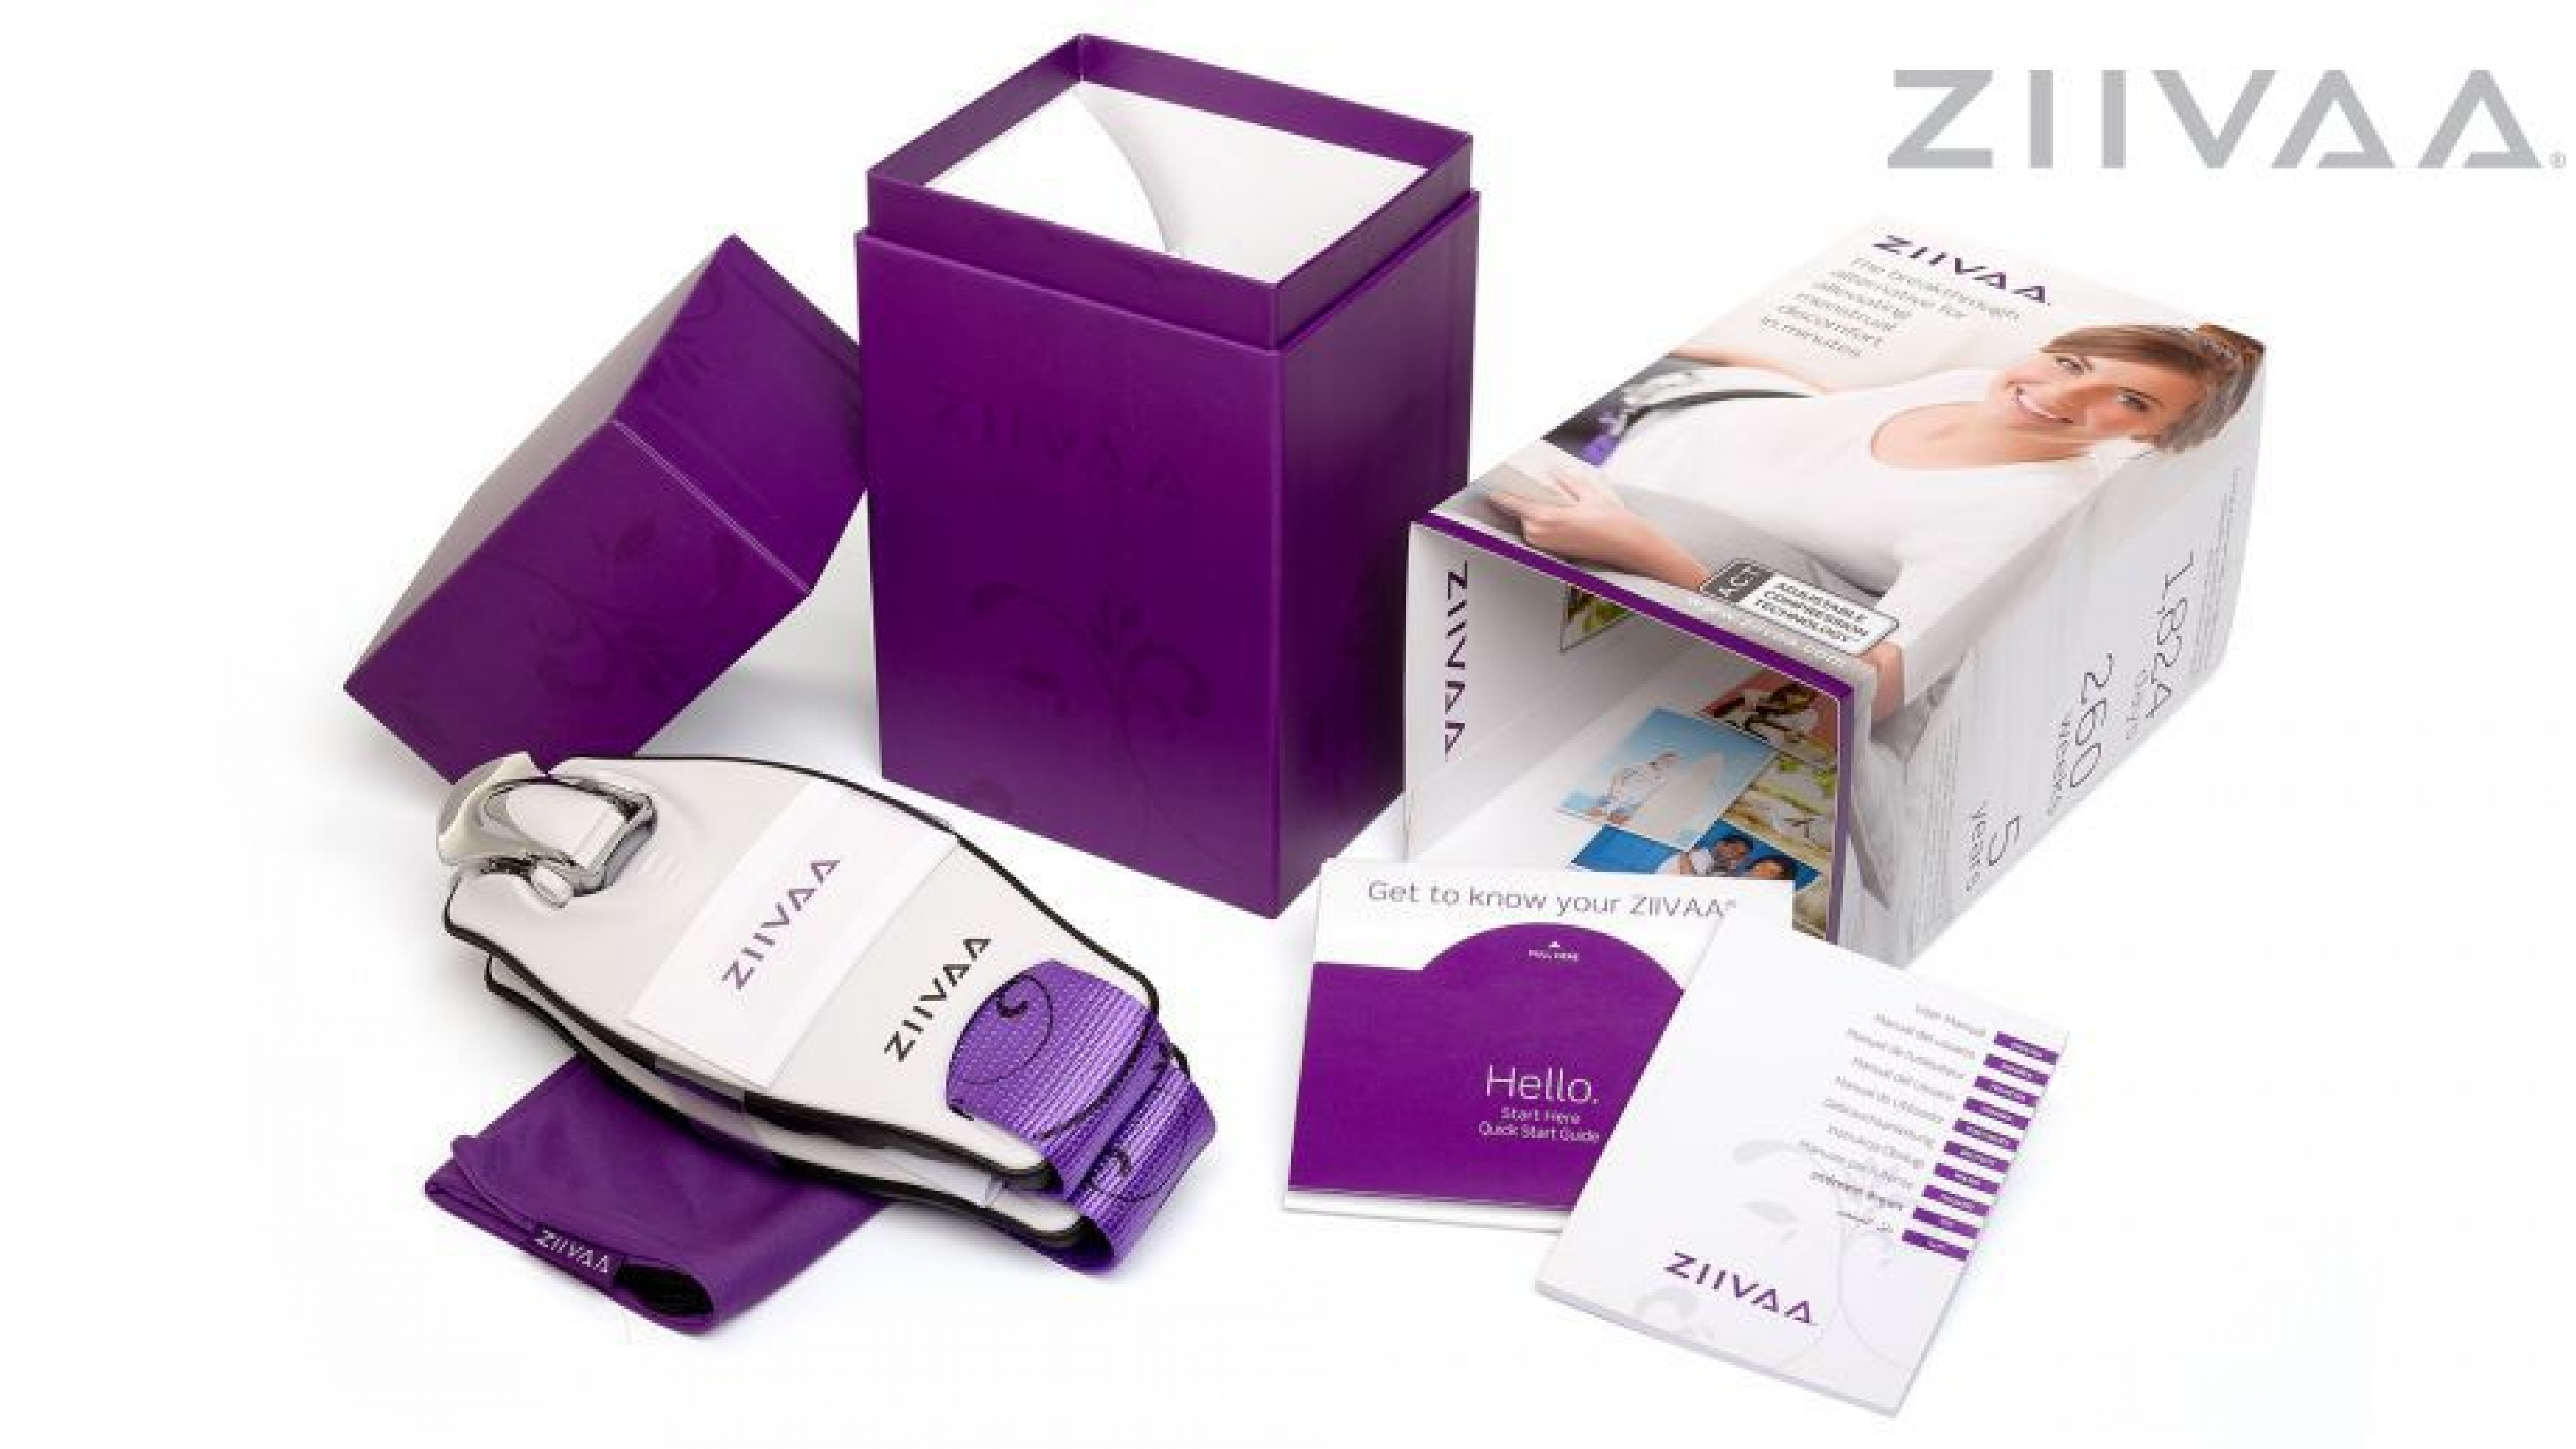 Ziivaa Product Packaging | ROBRADY design